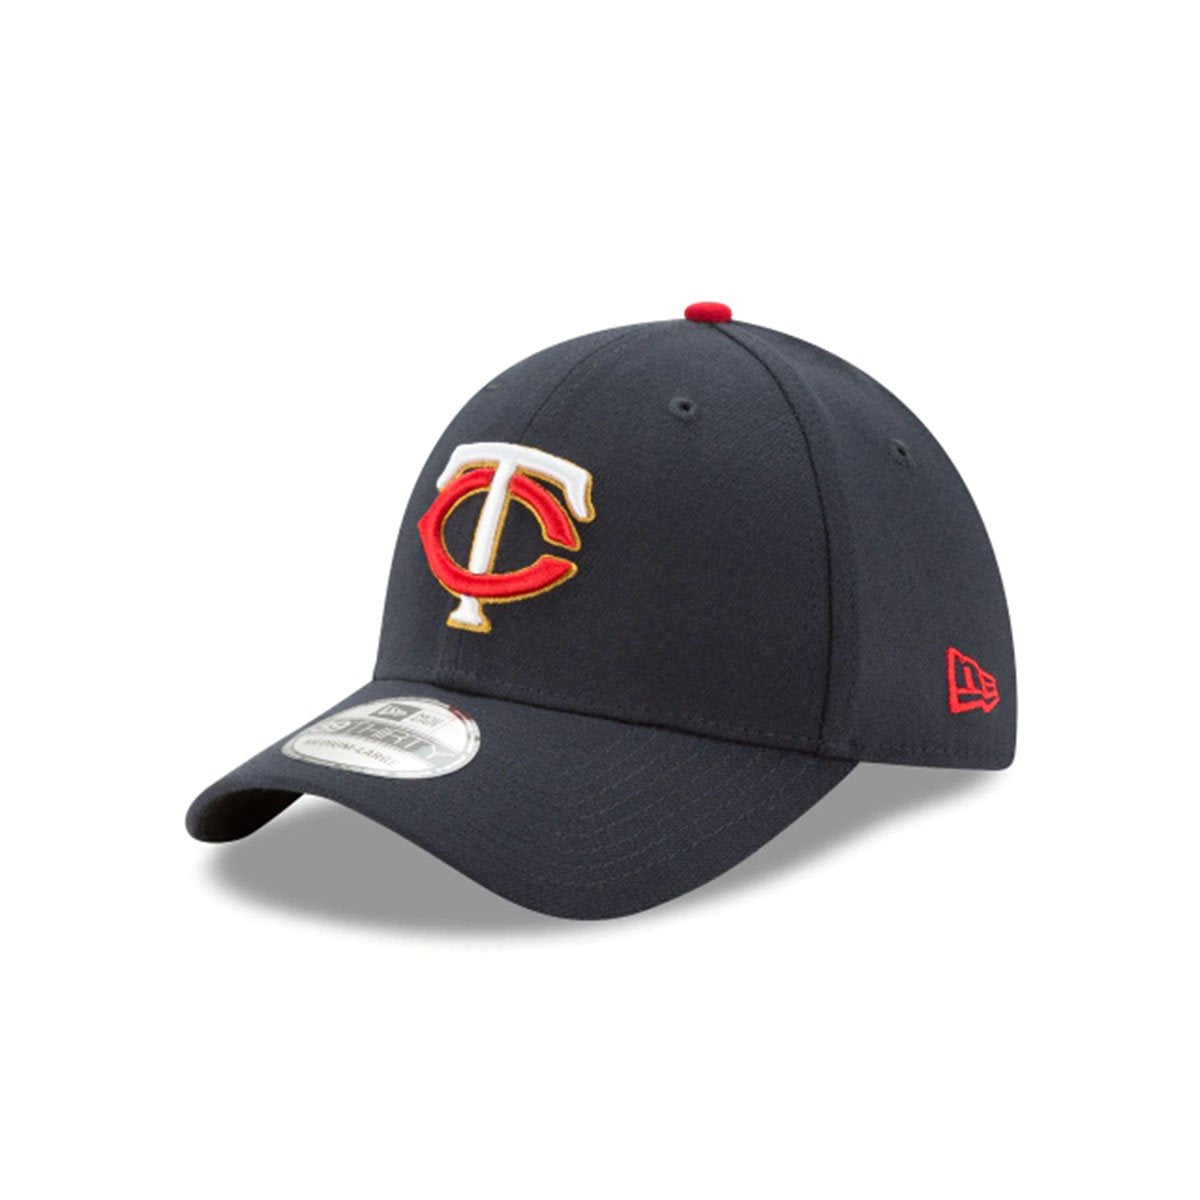 MINNESOTA TWINS TEAM CLASSIC 39THIRTY STRETCH FIT NAVY/RED